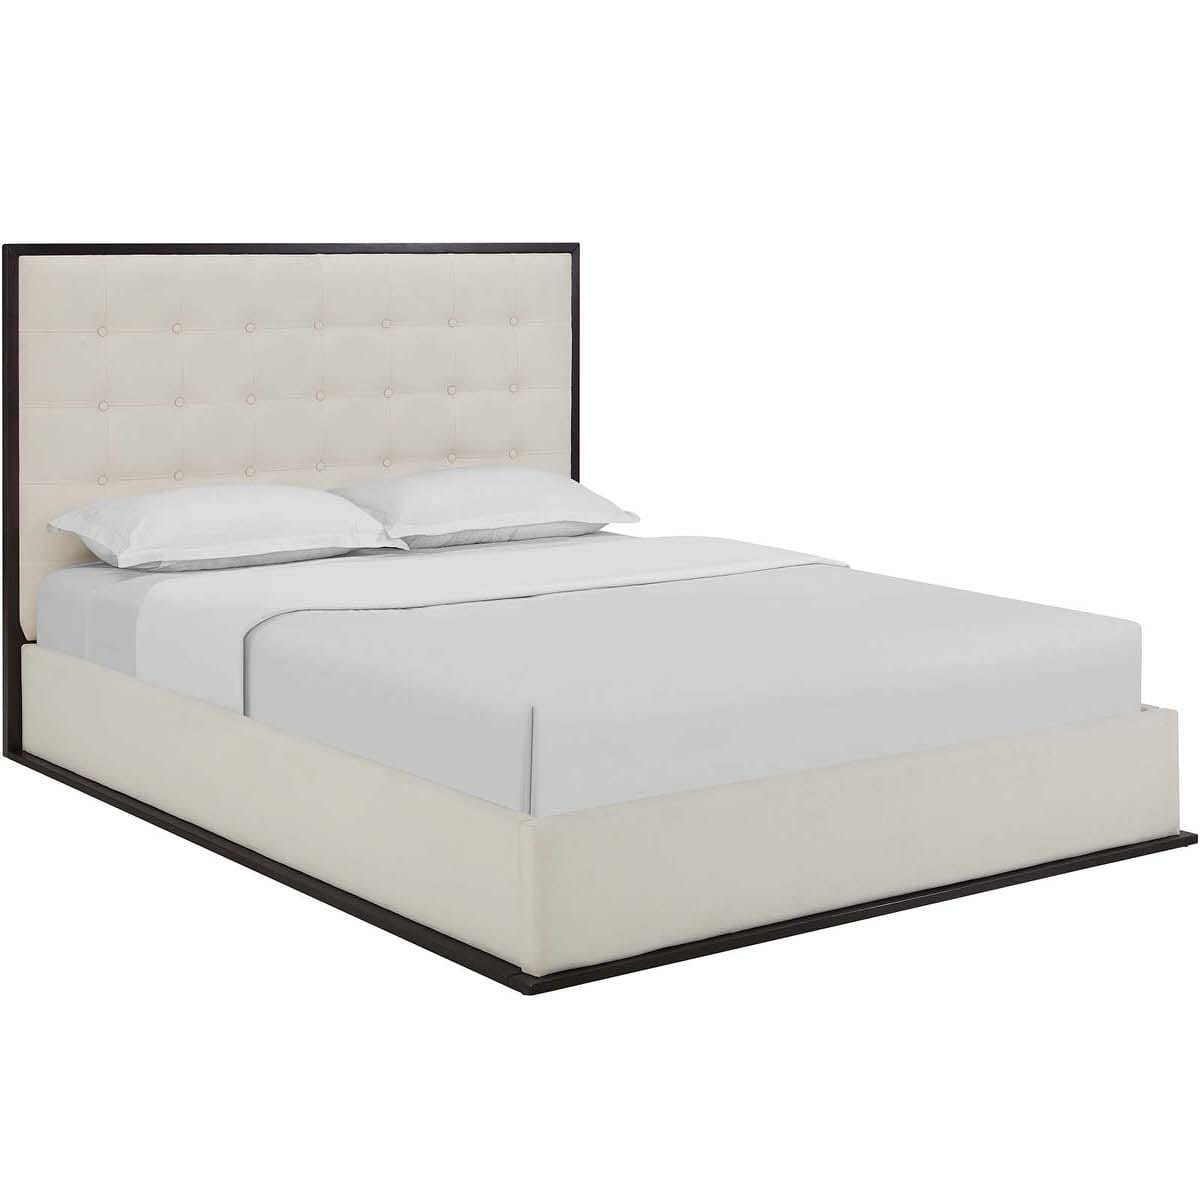 Madeline Queen Upholstered Bed Frame Cappuccino Ivory By Modern Living